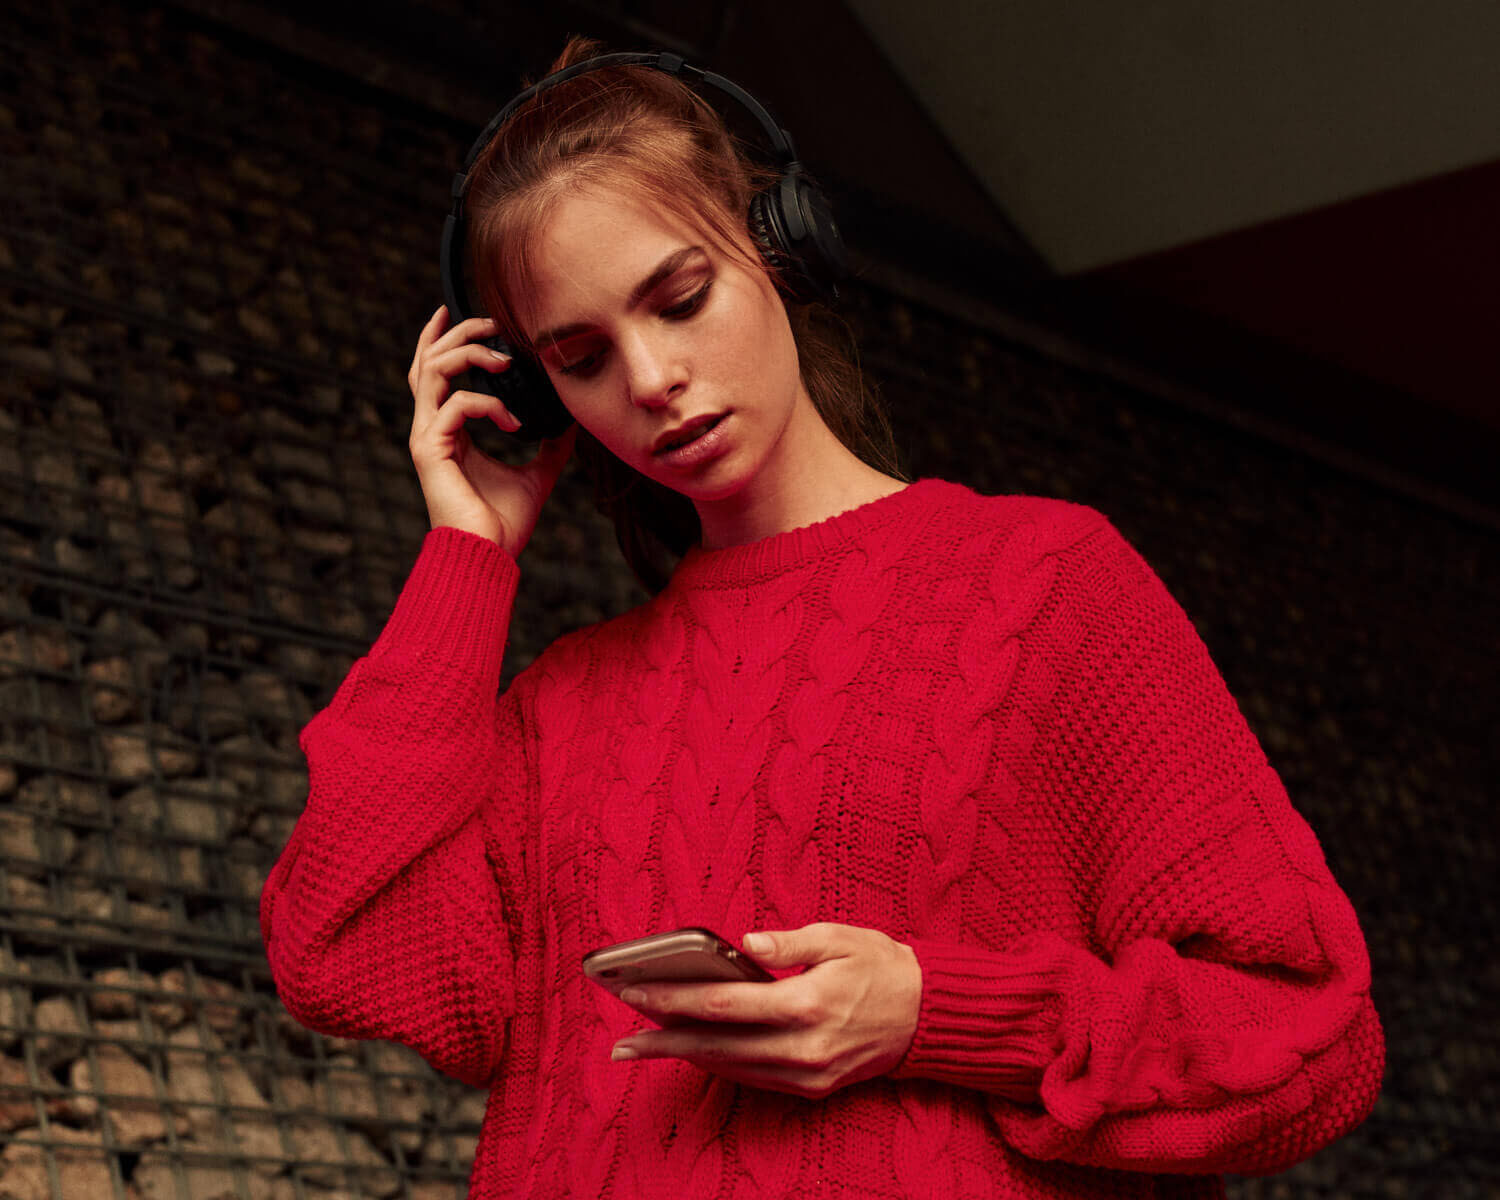 Lifestyle photographer Tim Cole shoots girl in red jumper